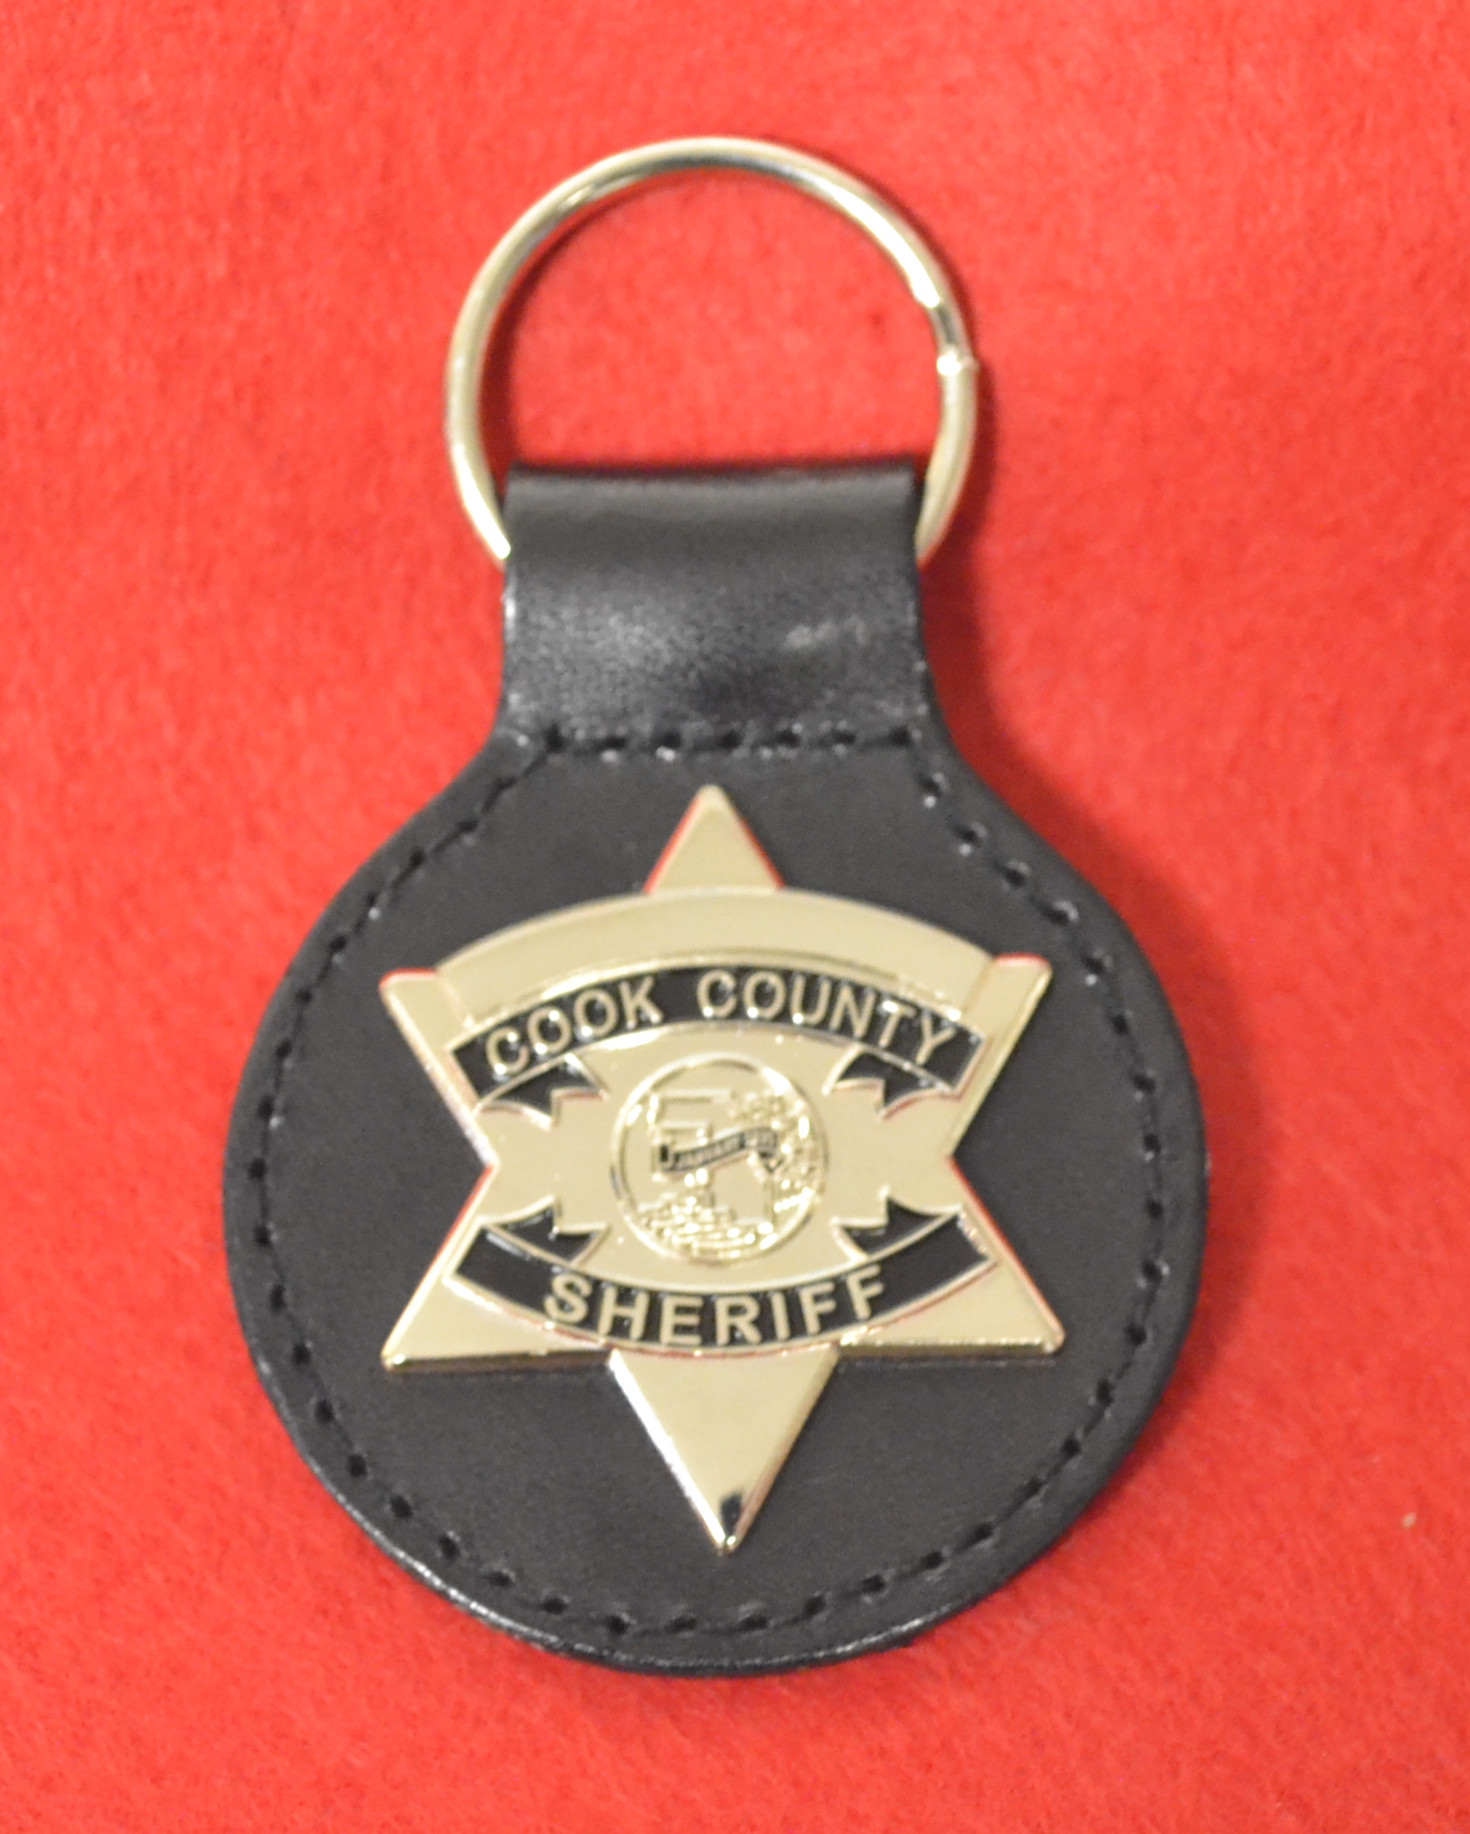 Cook County Sheriff Key FOb